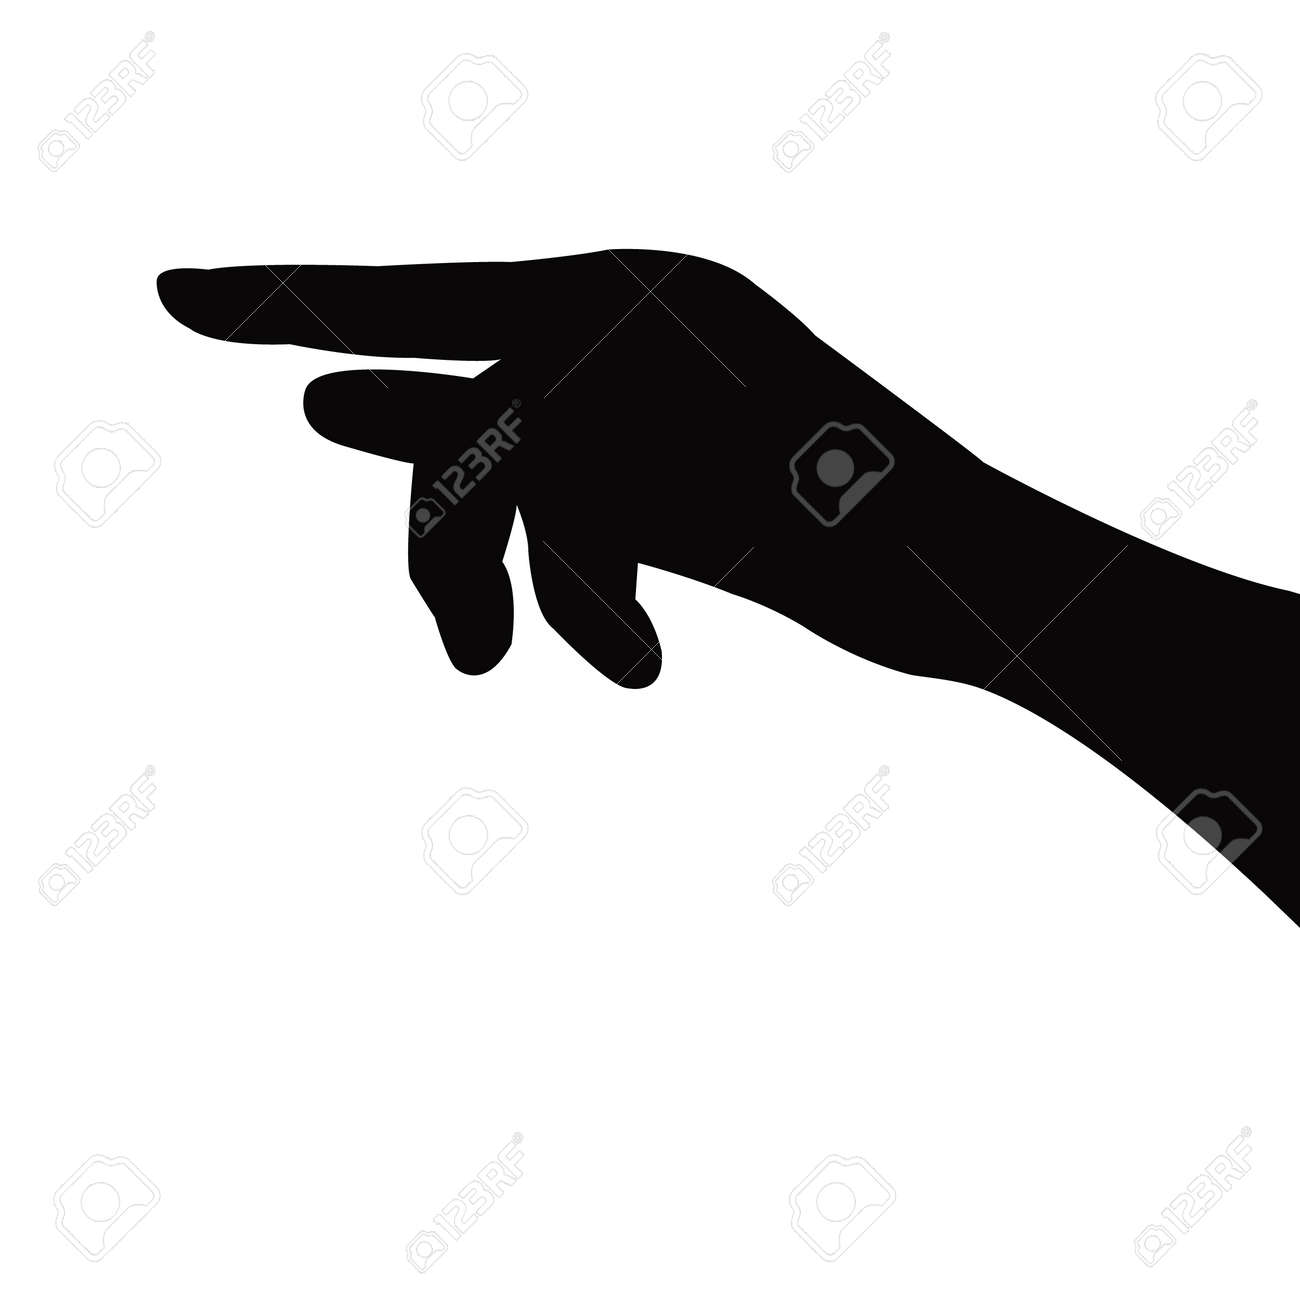 a hand silhouette vector - 148293349